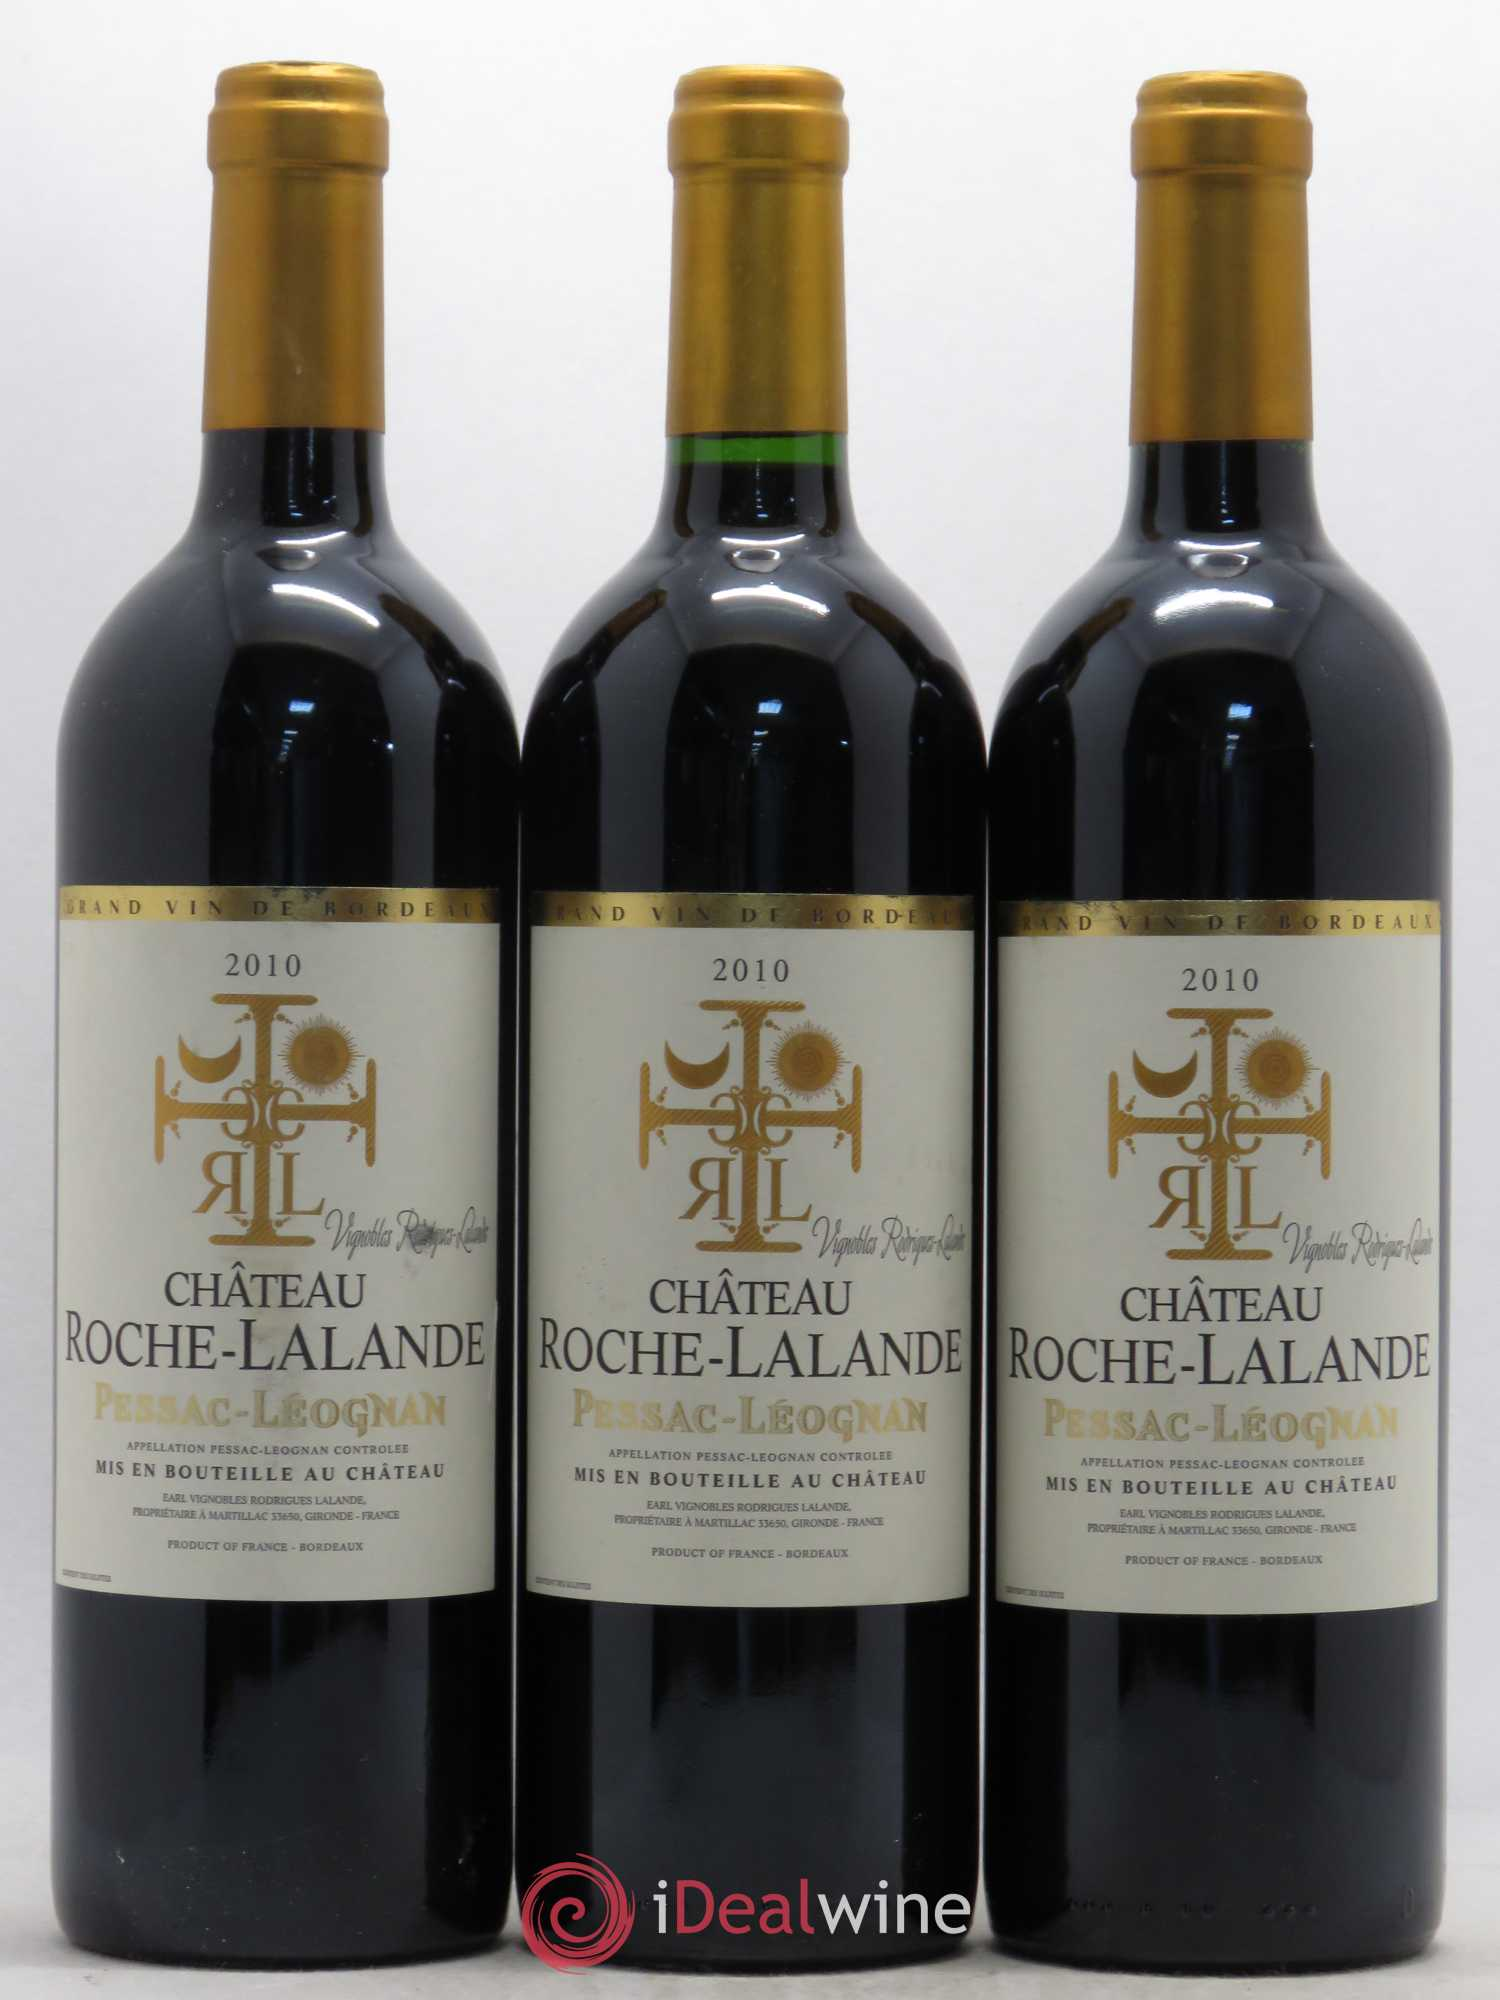 Pessac-Léognan Chateau Roche-Lalande 2010 - Lot of 3 Bottles